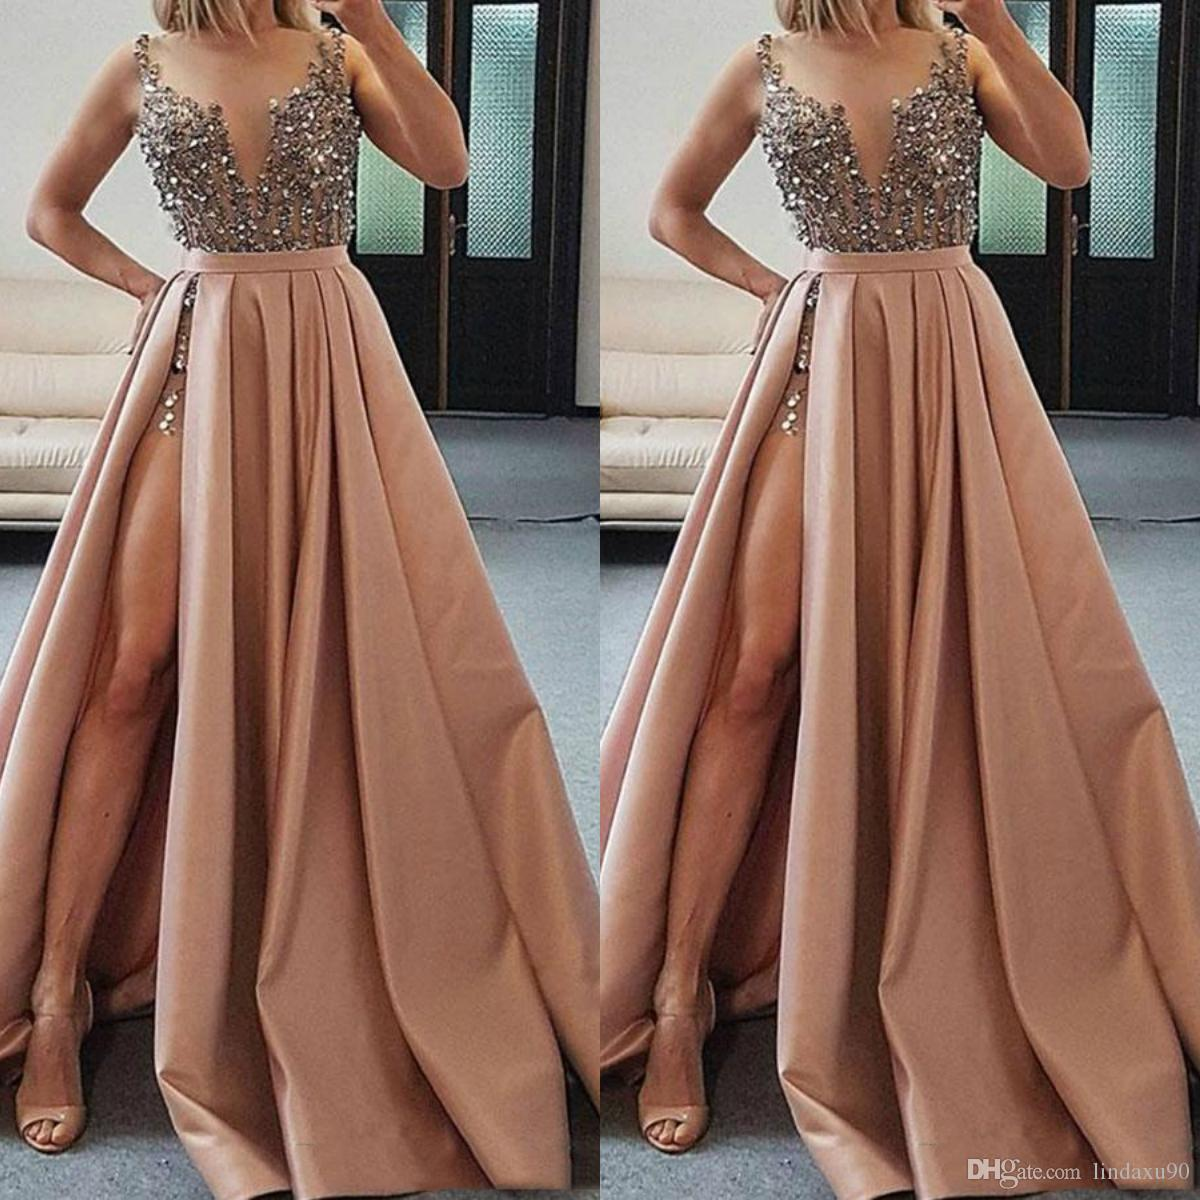 Beaded Split Satin Prom Dresses A Line Sheer V Neck Crystal Evening Gowns Sweep Train Formal Cocktail Dress